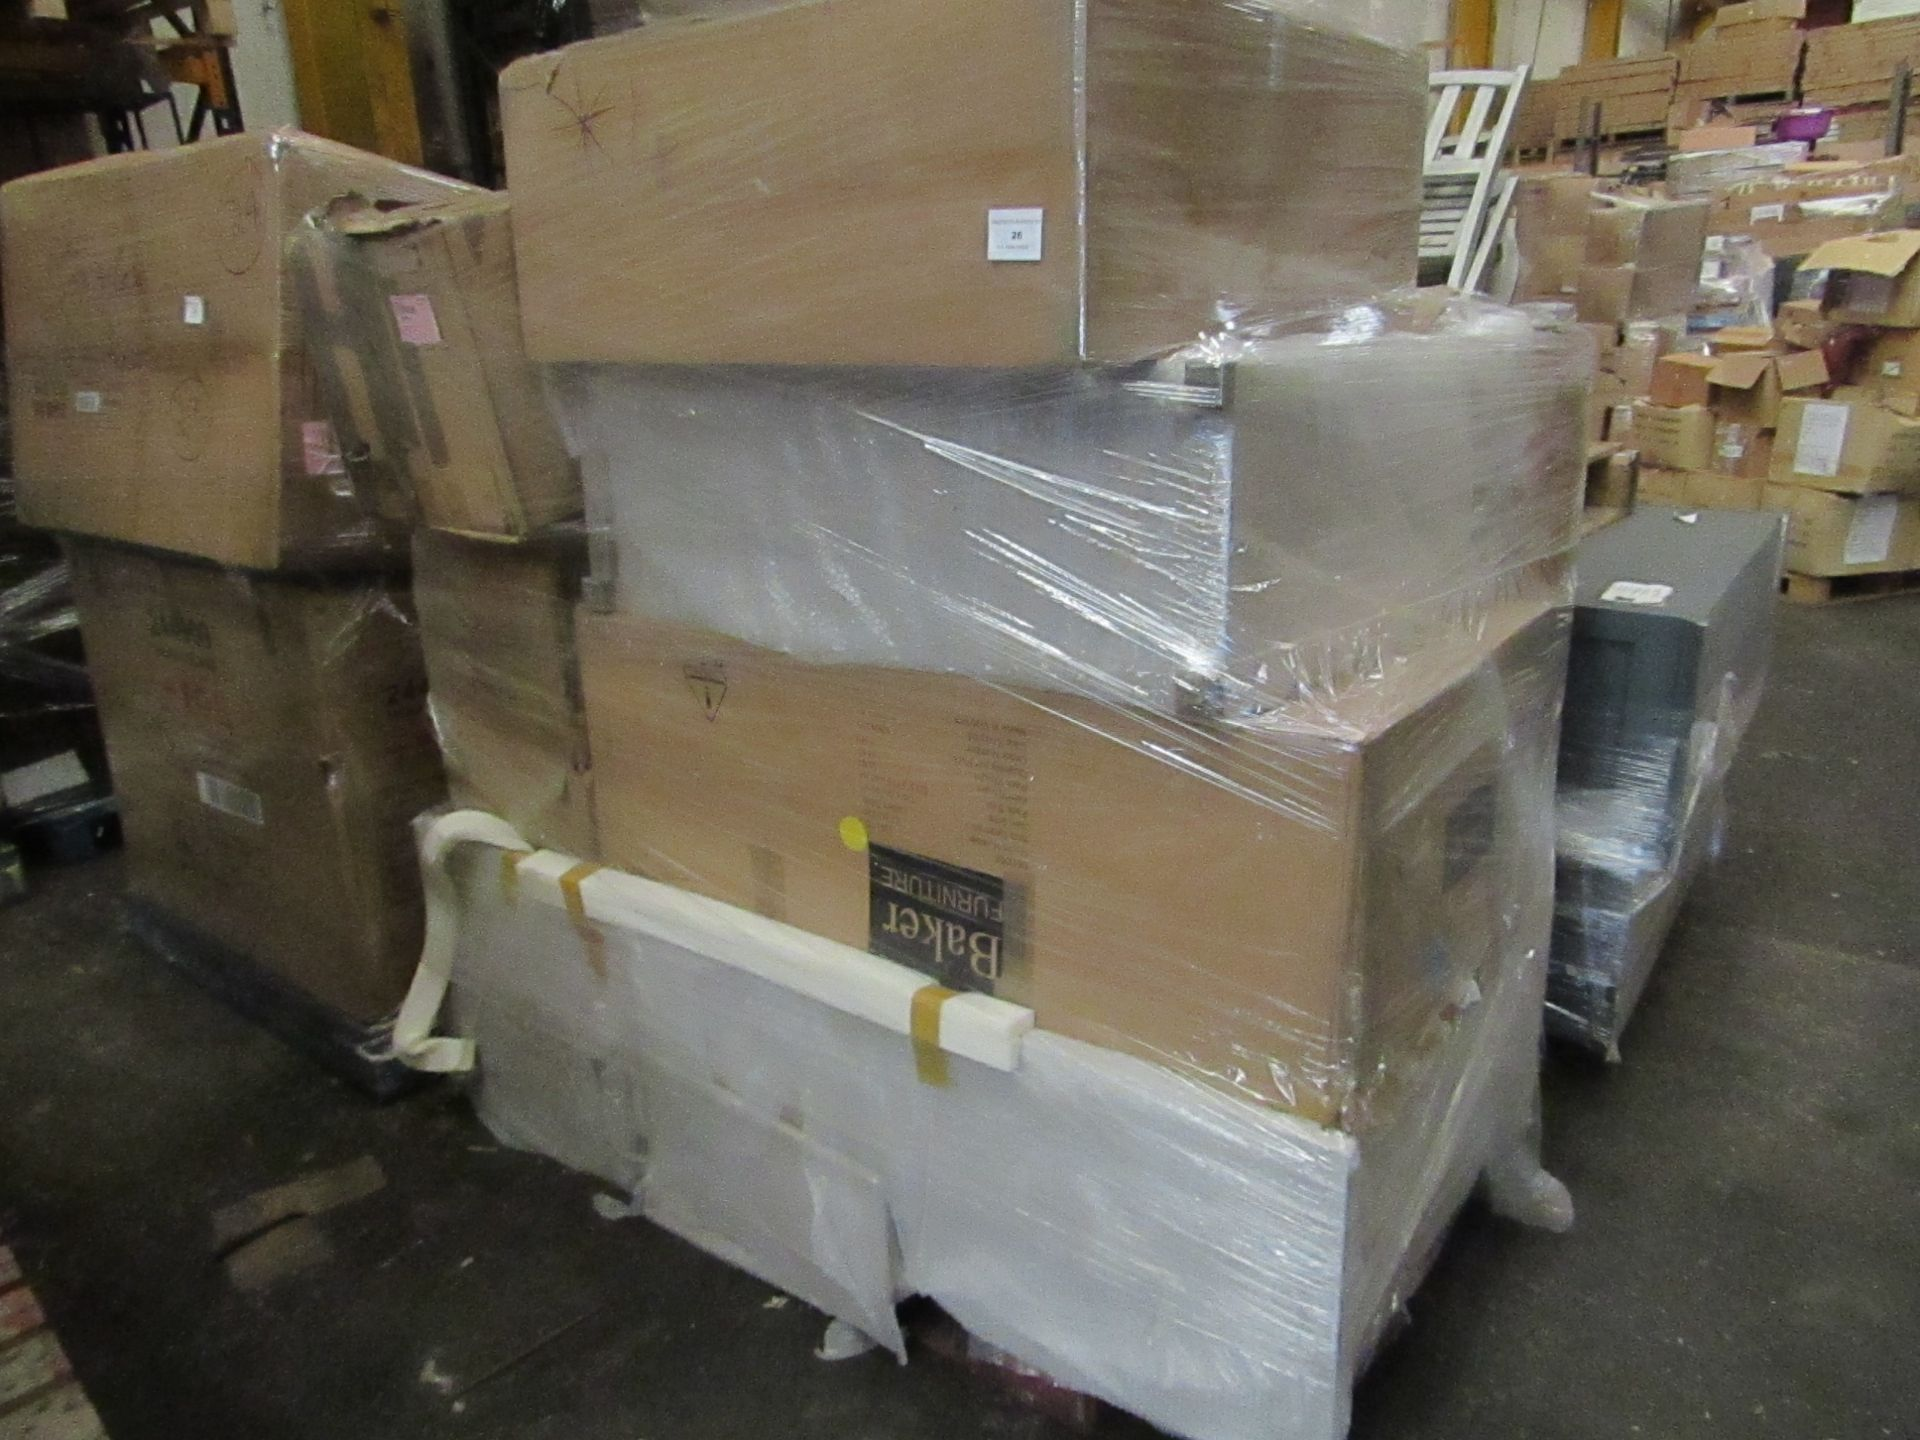 | 1X | PALLET OF COX AND COX B.E.R FURNITURE, UNMANIFESTED, WE HAVE NO IDEA WHAT IS ON THESE